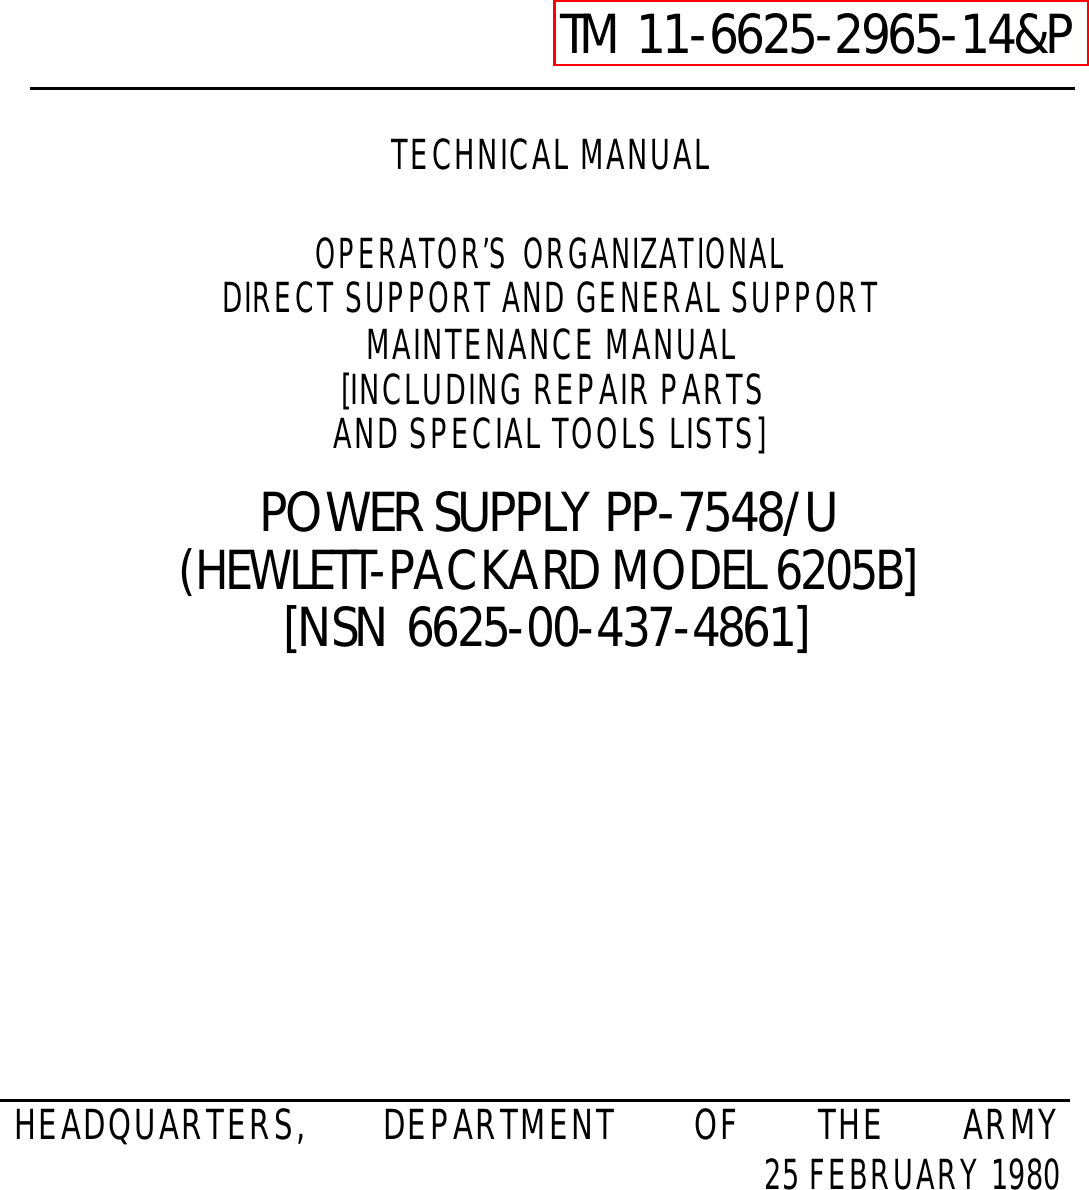 Hp Power Supply 6205b Users Manual Tm 11 6625 2965 14p Block Diagram Led Lighting Sbd Ticom